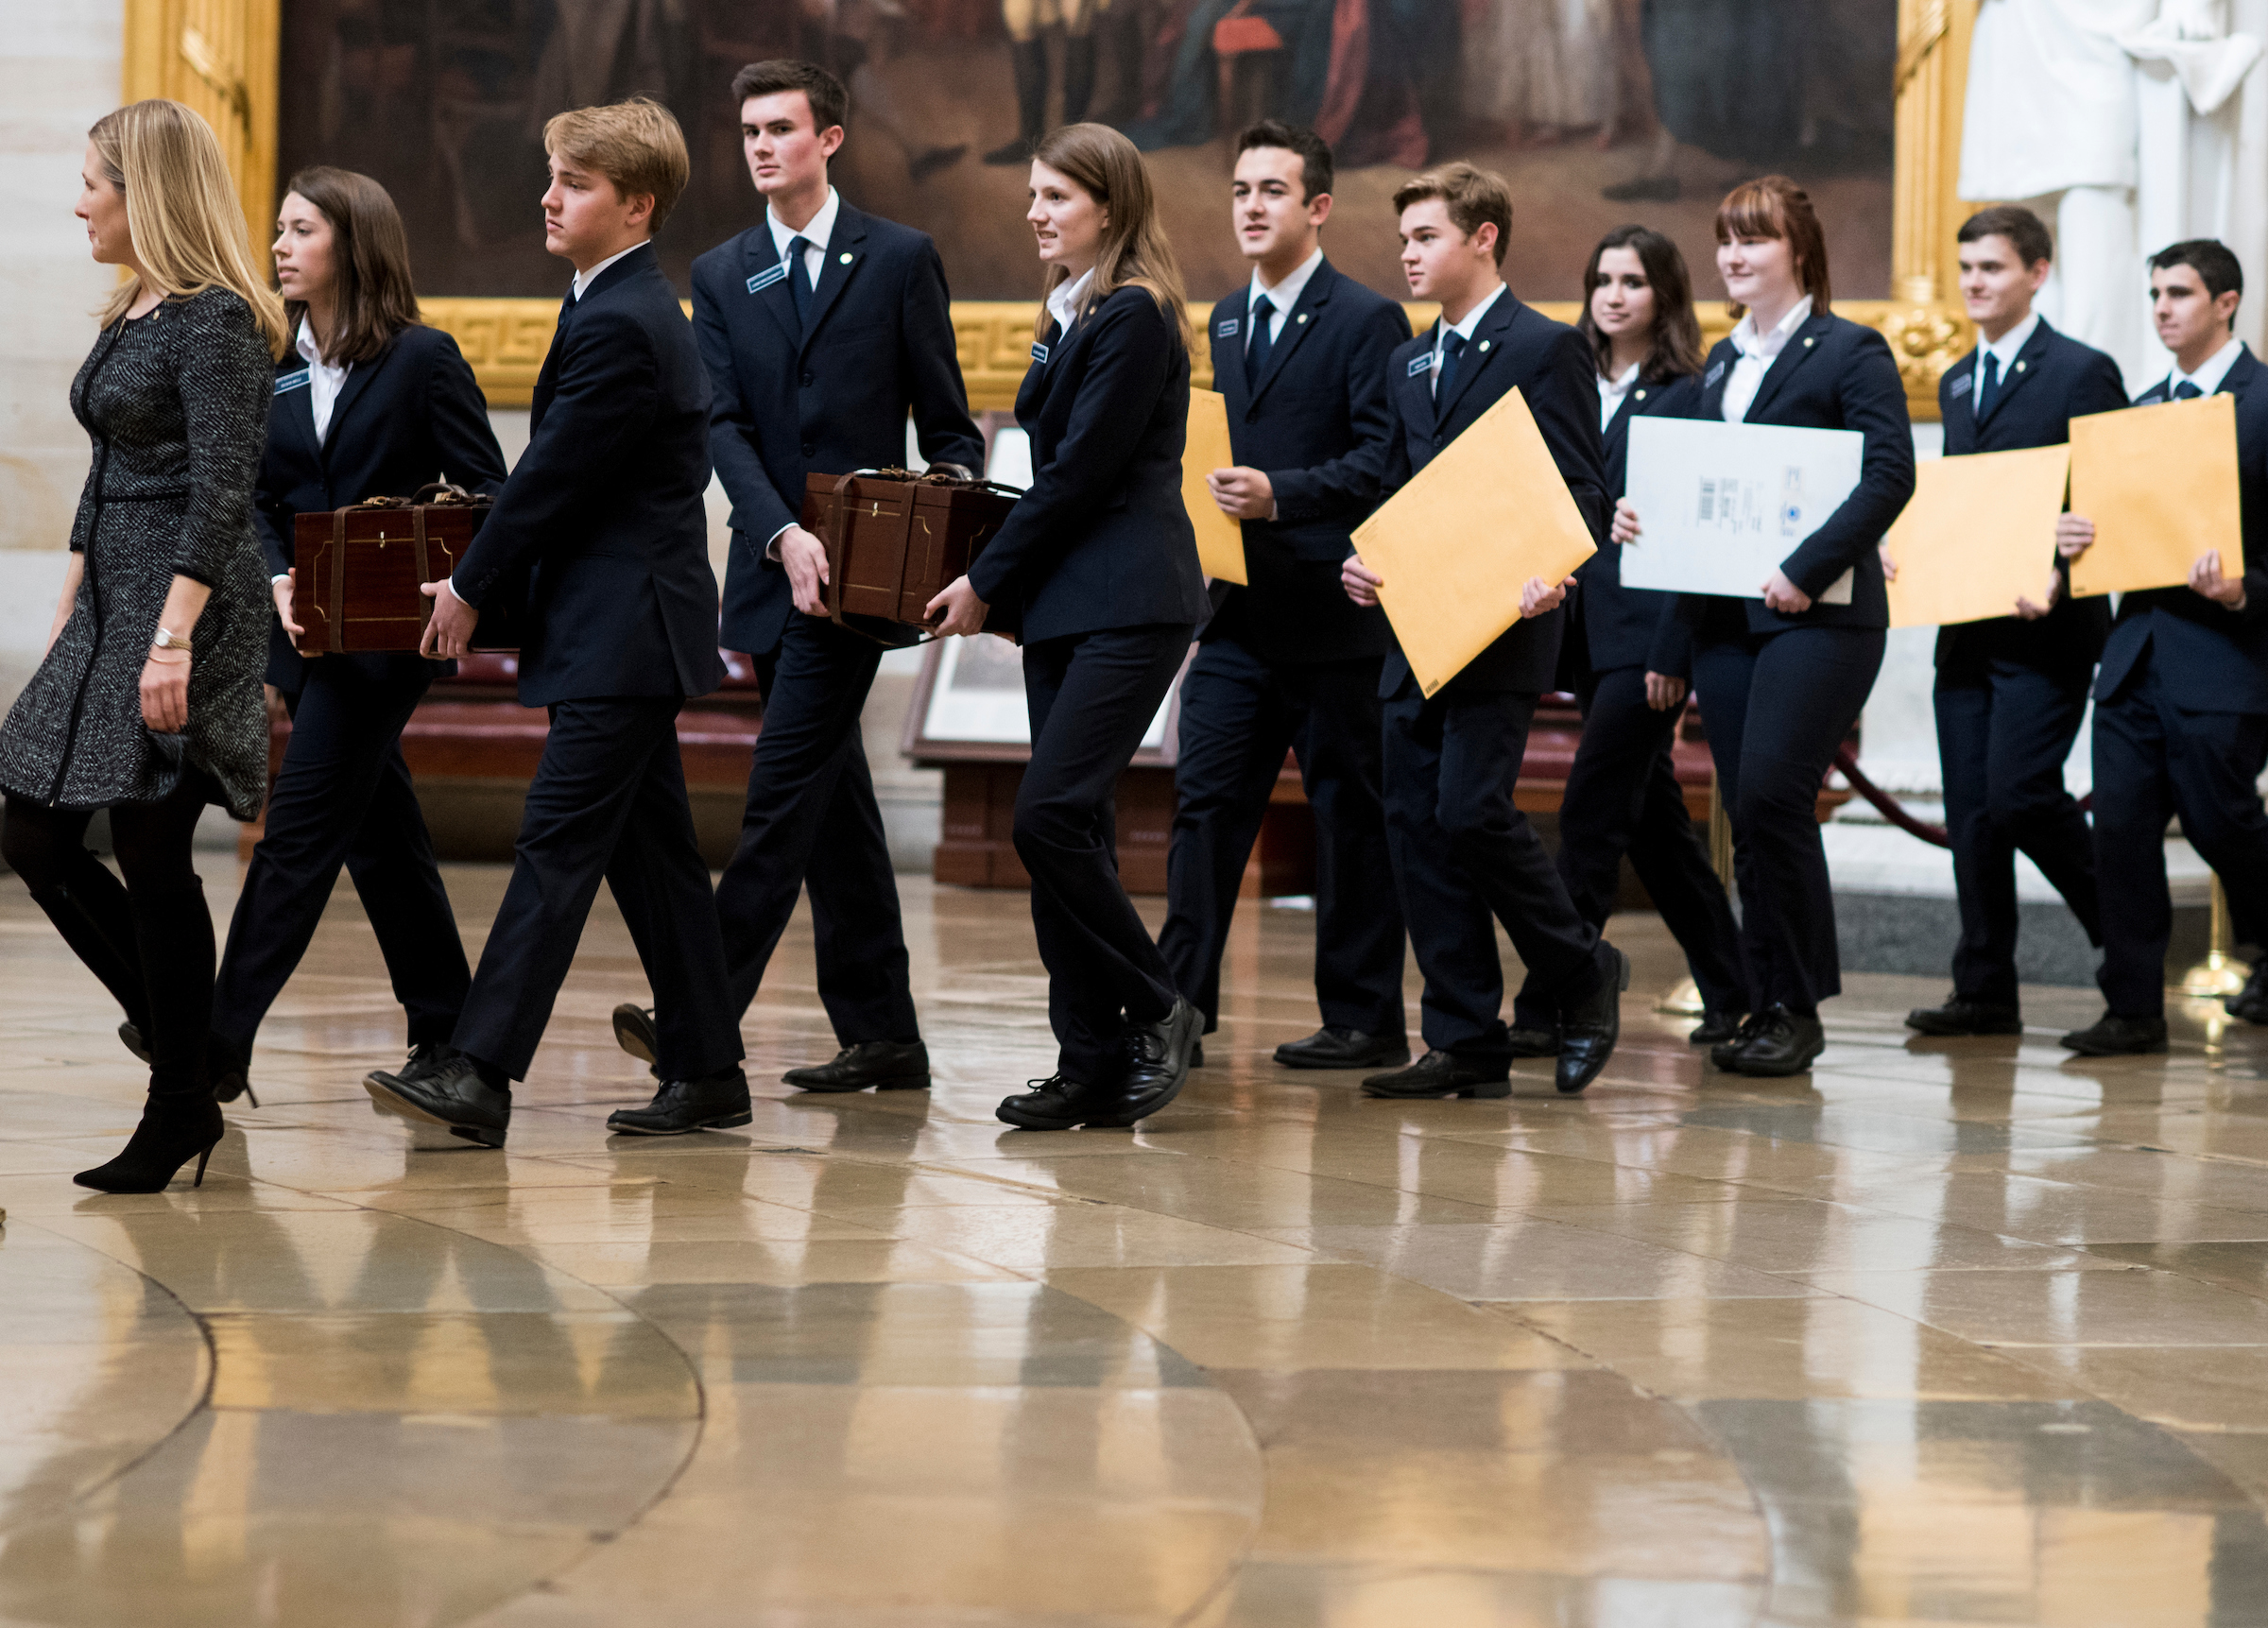 Senate pages lead the procession of the Senate through the U.S. Capitol Rotunda into the House chamber with the Electoral College ballot boxes on Friday. (Bill Clark/CQ Roll Call)